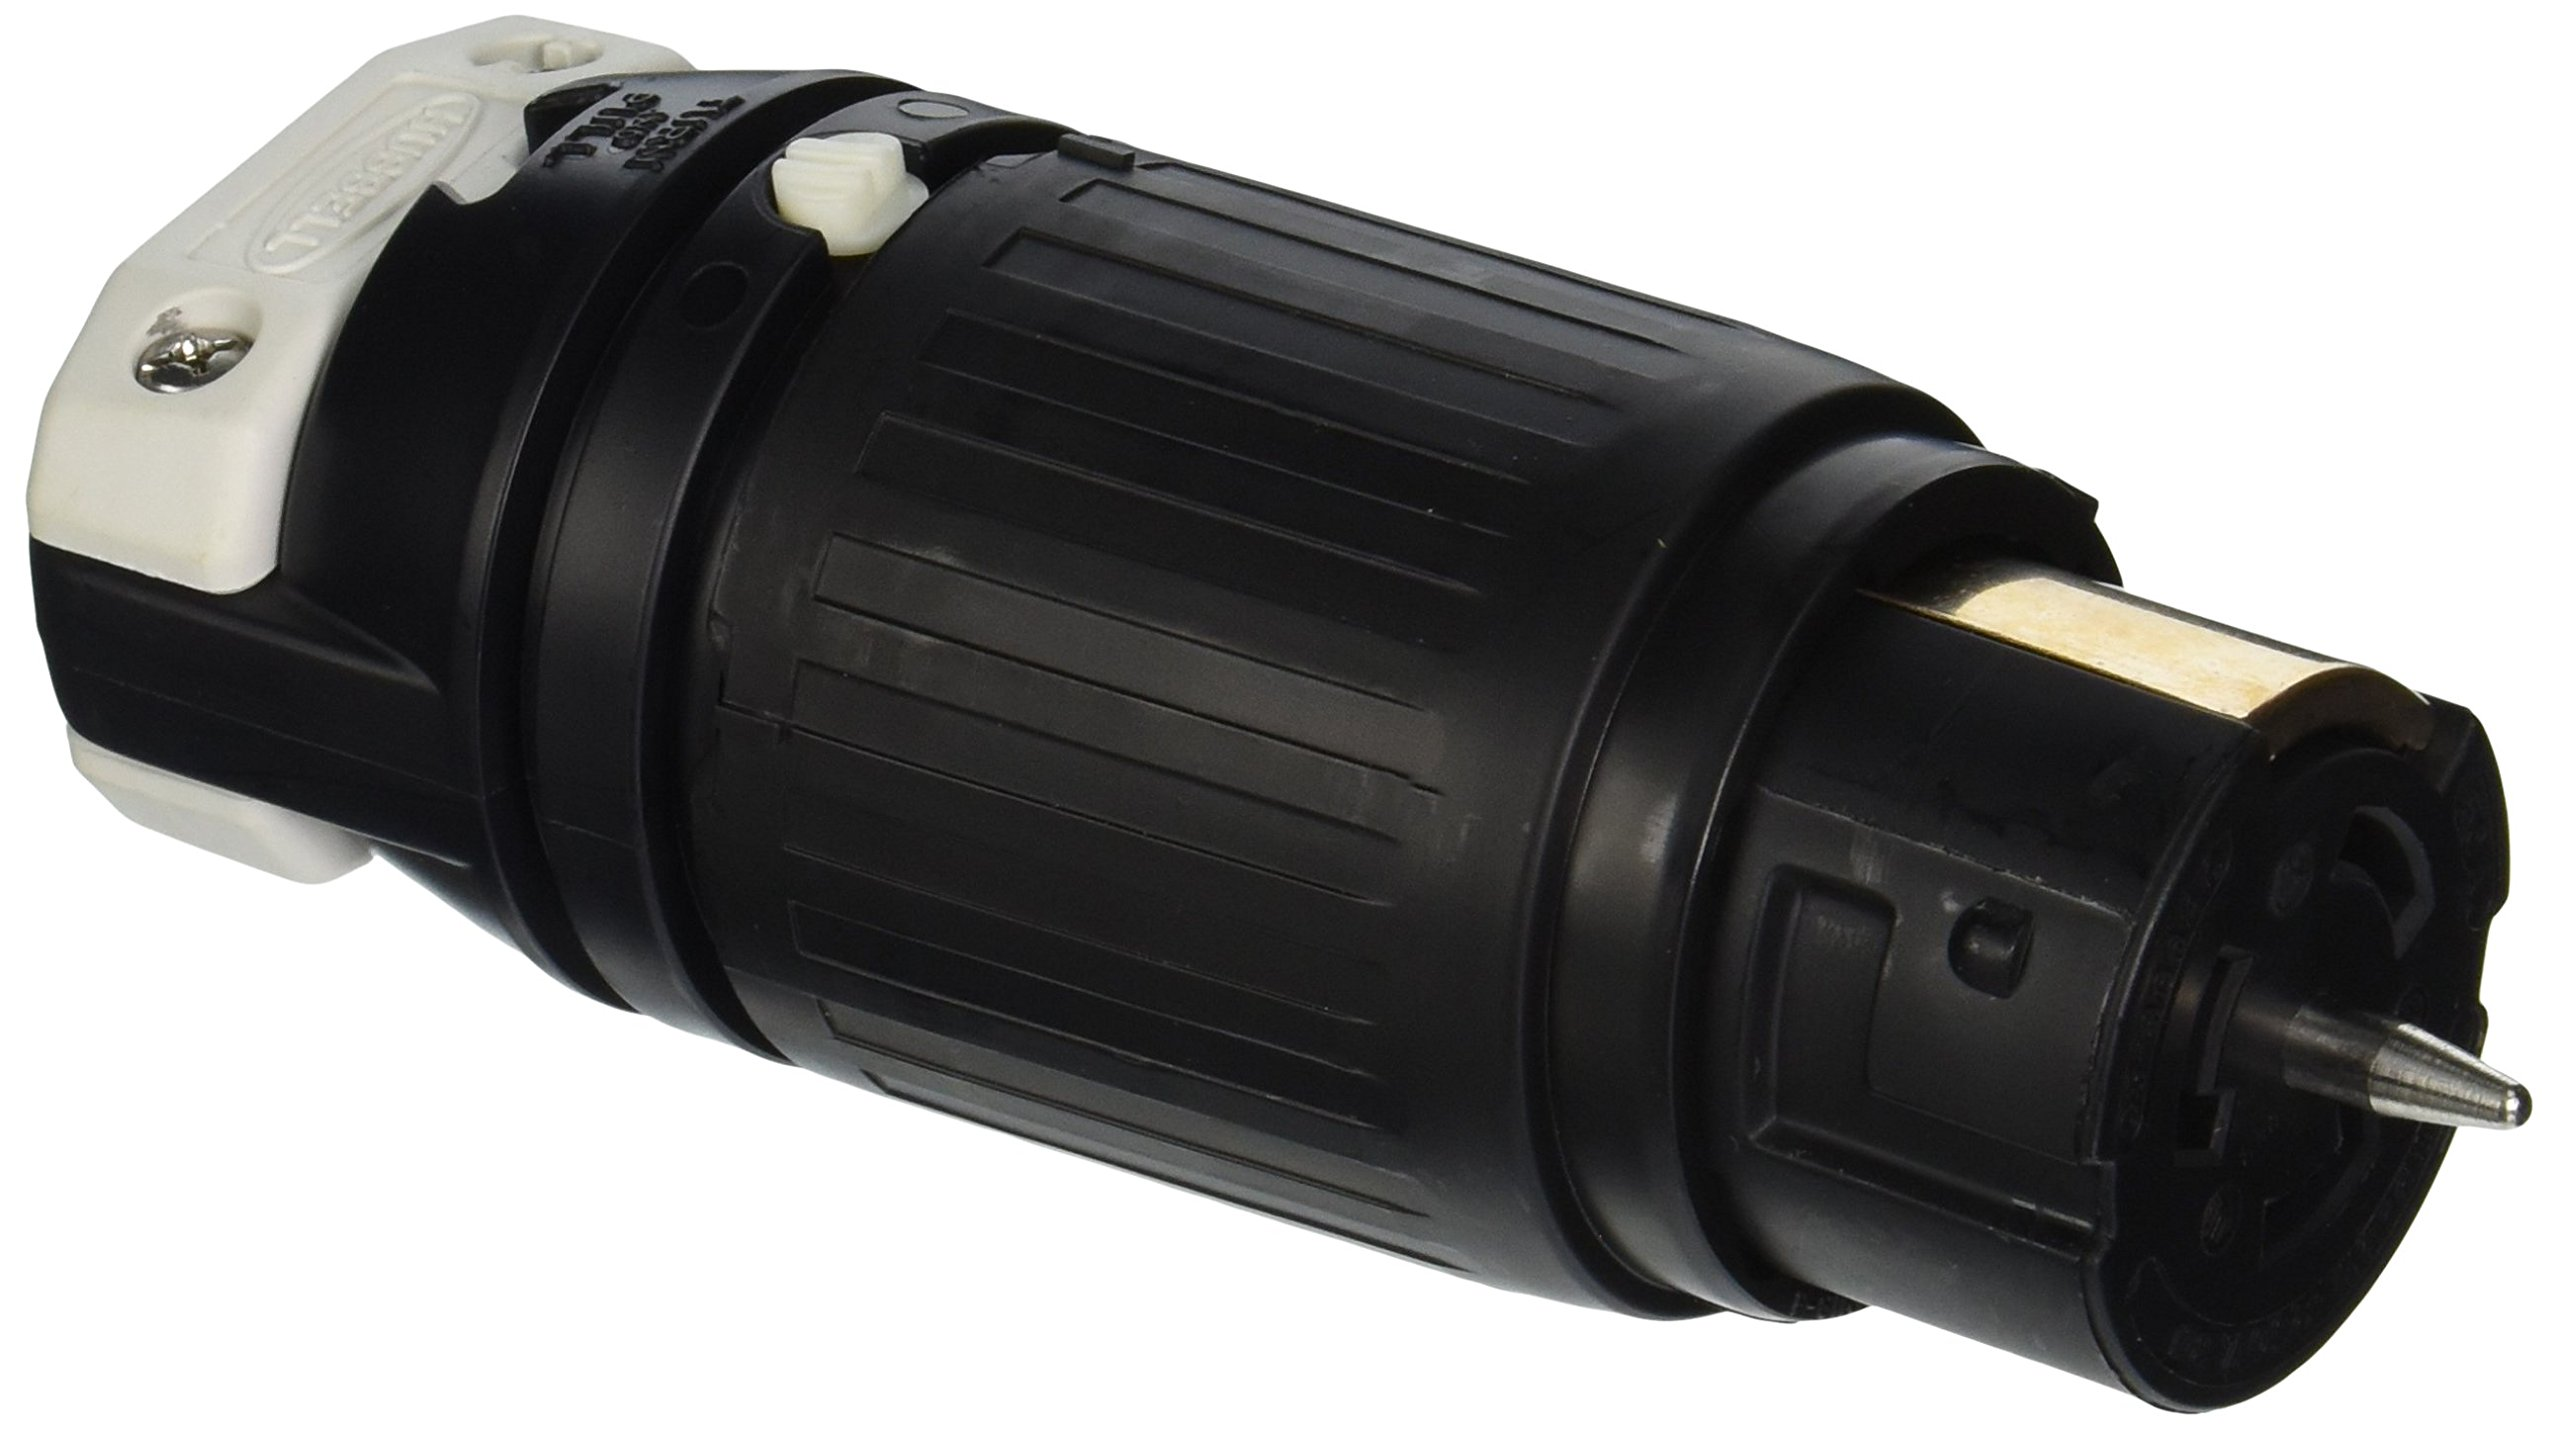 Hubbell CS8364C Locking Connector, 50 amp, 3 Phase 250V, 3 Pole 4 Wire